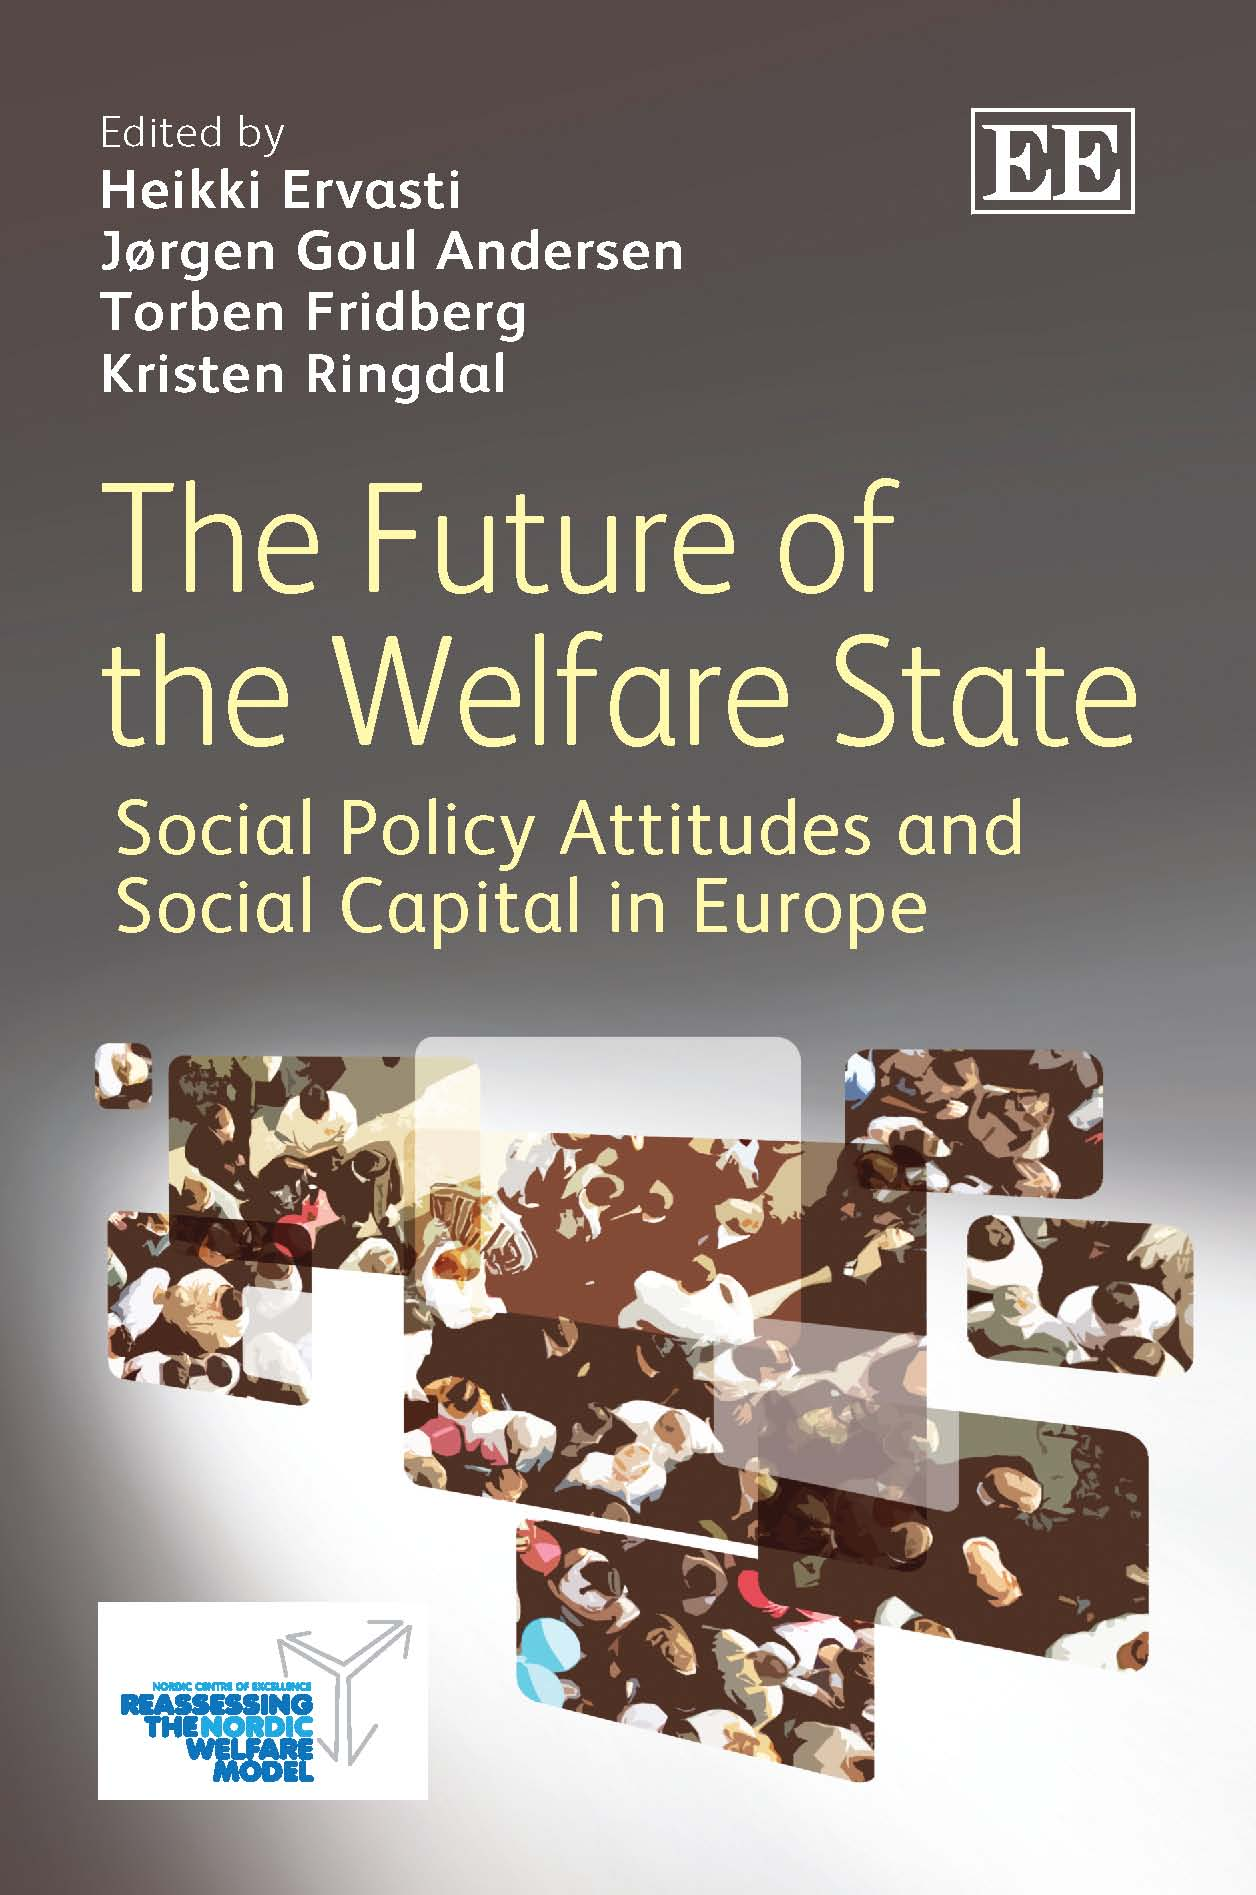 The Future of the Welfare State